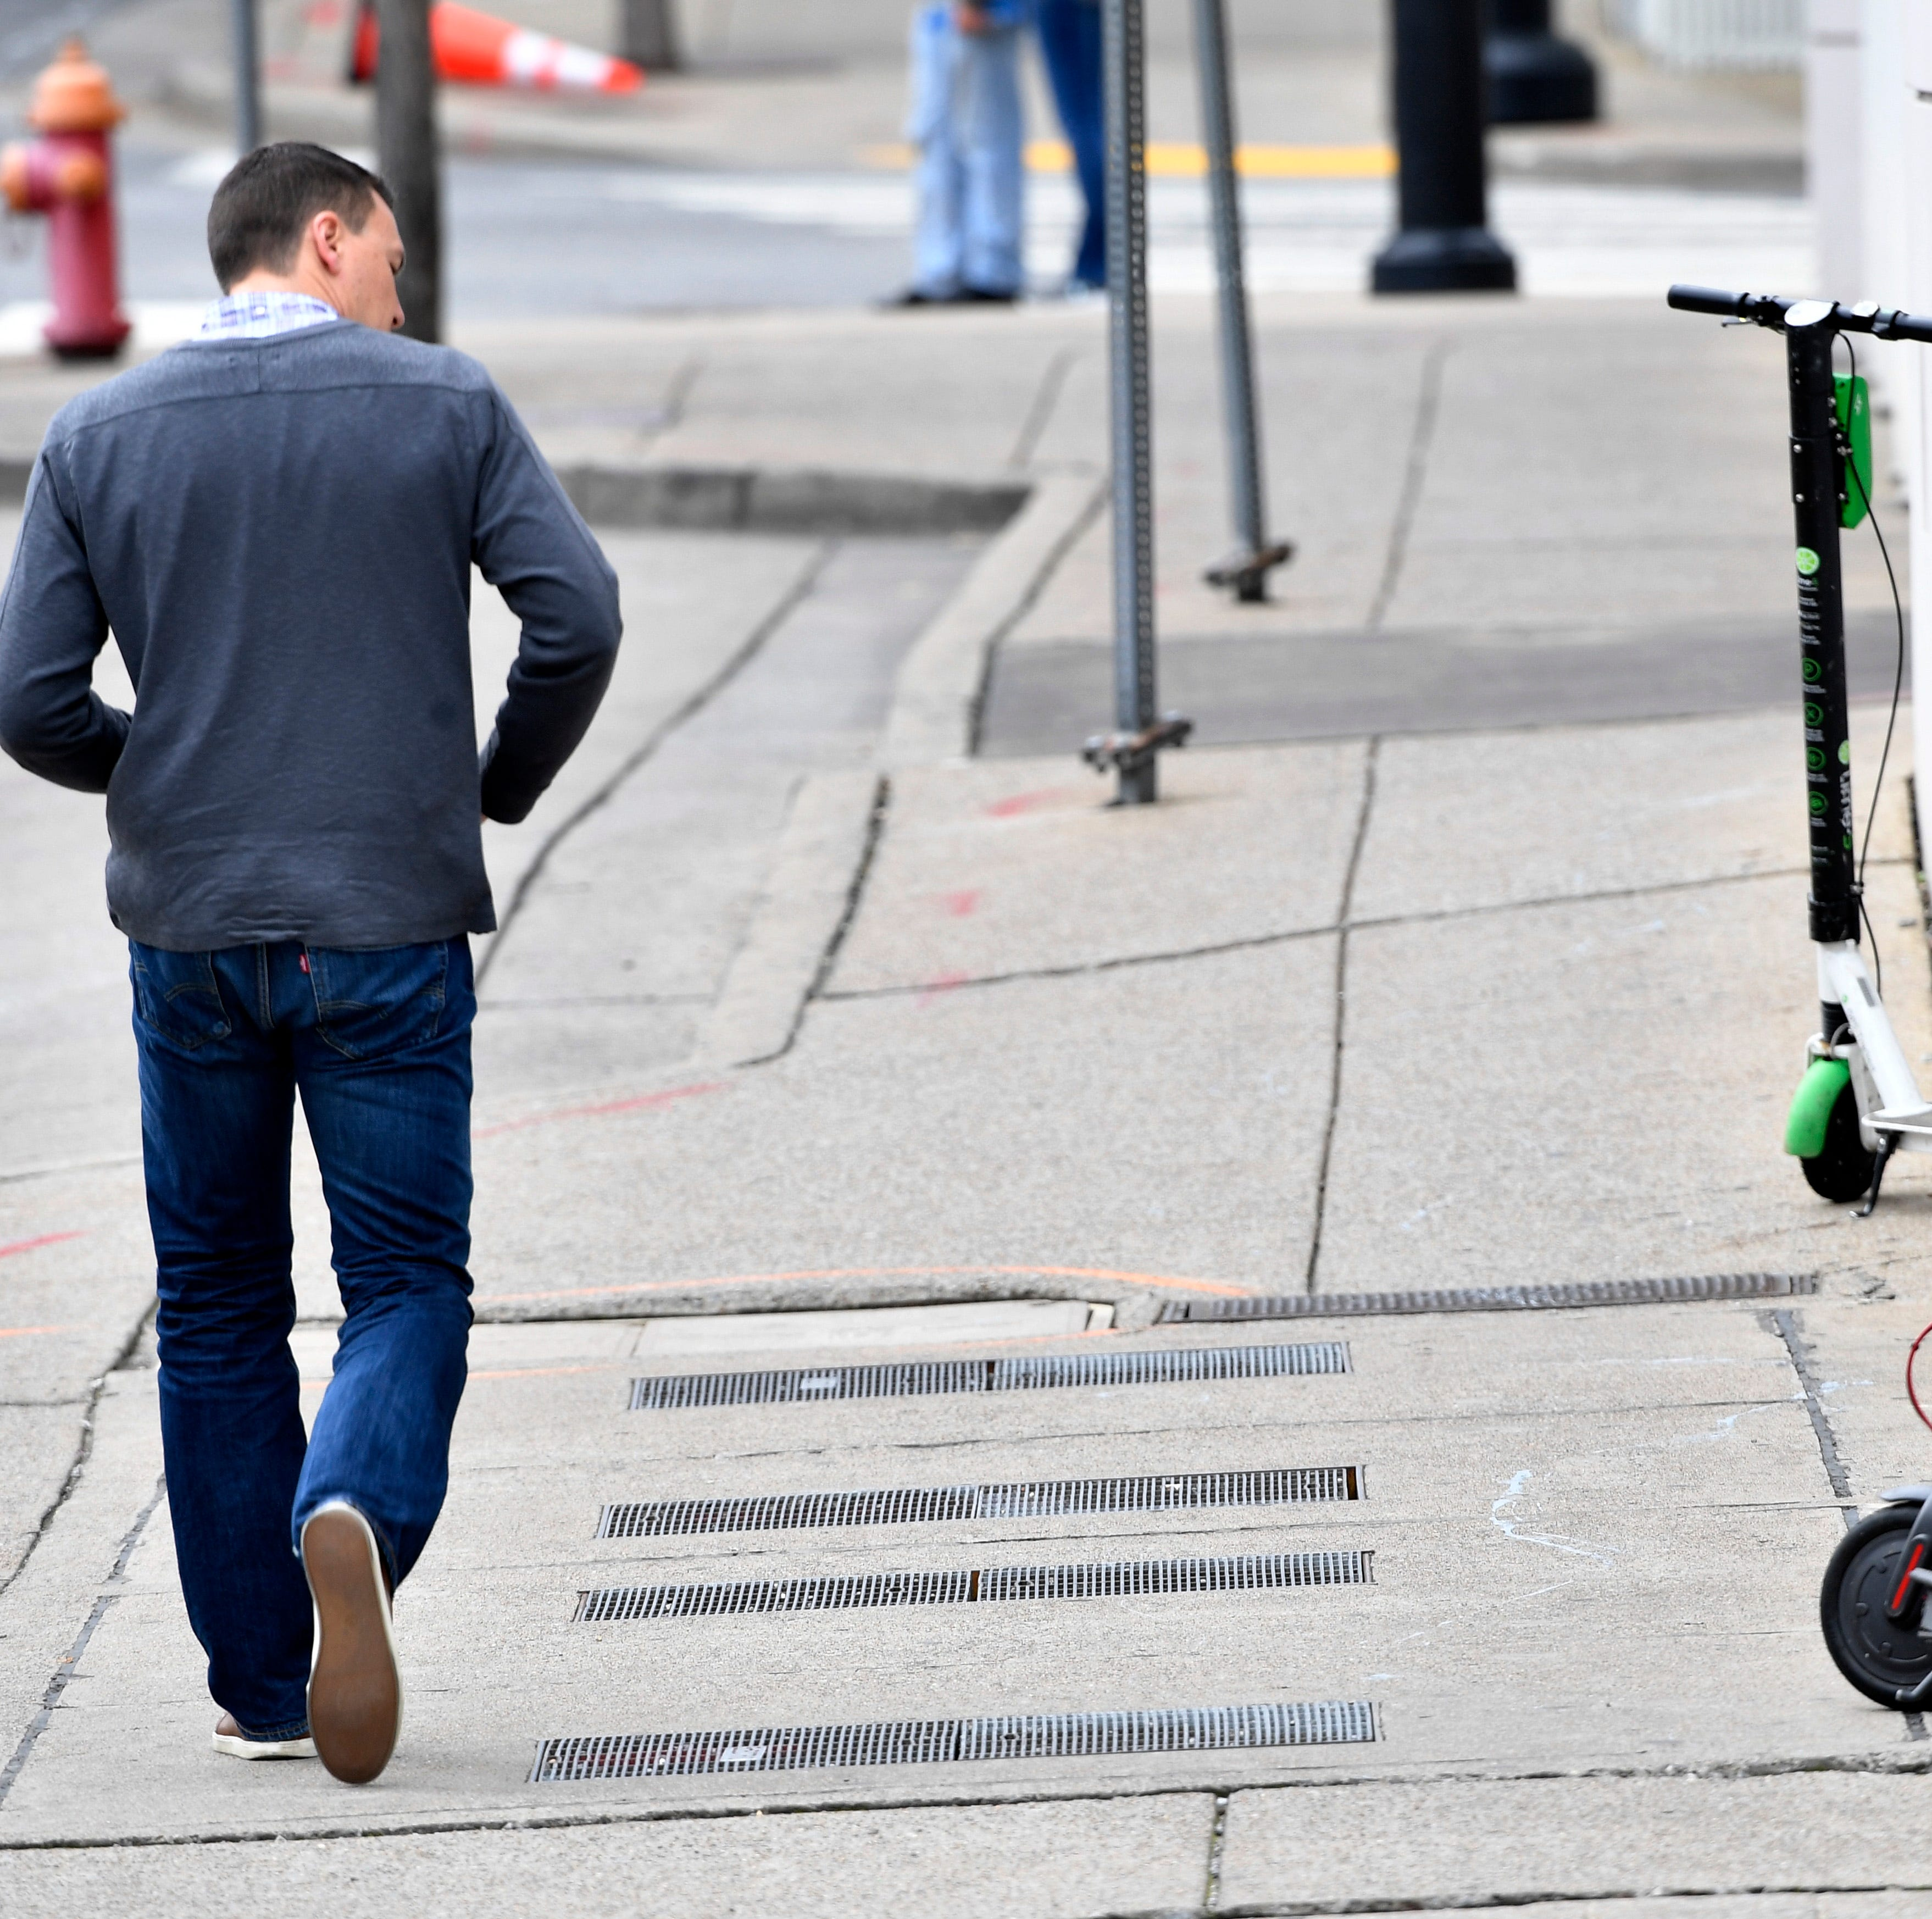 Nashville can fine for illegal parking and operation under new electric scooter rules